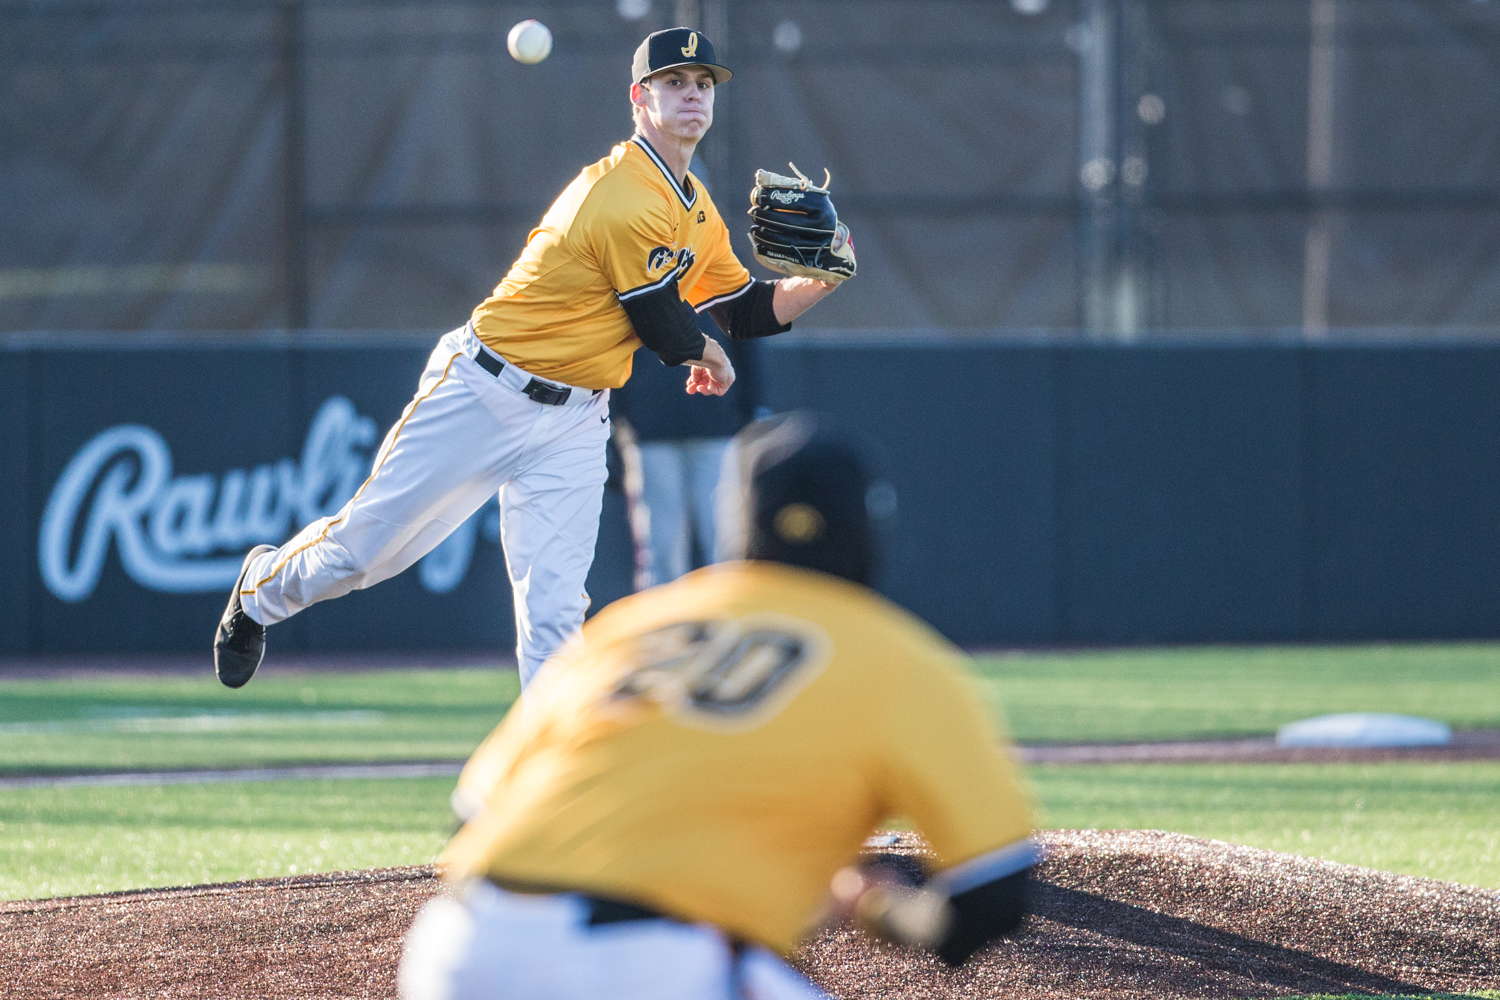 Iowa+pitcher+Grant+Judkins+makes+a+pickoff+throw+to+first+during+the+second+game+of+a+baseball+doubleheader+between+Iowa+and+Cal-State+Northridge+at+Duane+Banks+Field+on+Sunday%2C+March+17%2C+2019.+The+Hawkeyes+took+the+series+by+defeating+the+Matadors%2C+3-1.